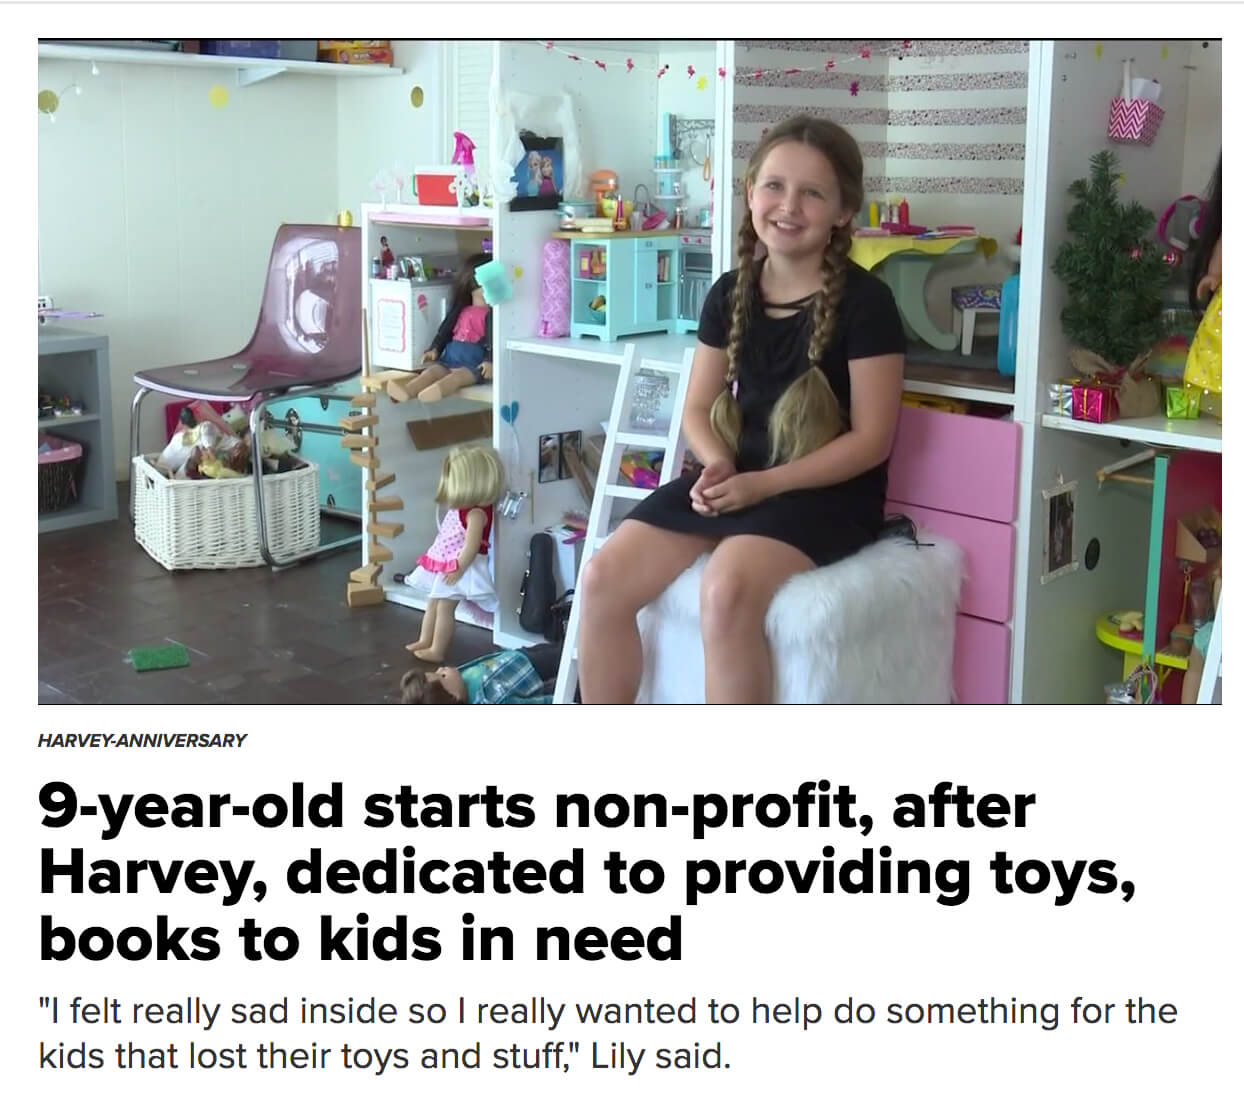 9 Year Old Founds Nonprofit to Donate Toys After Harvey